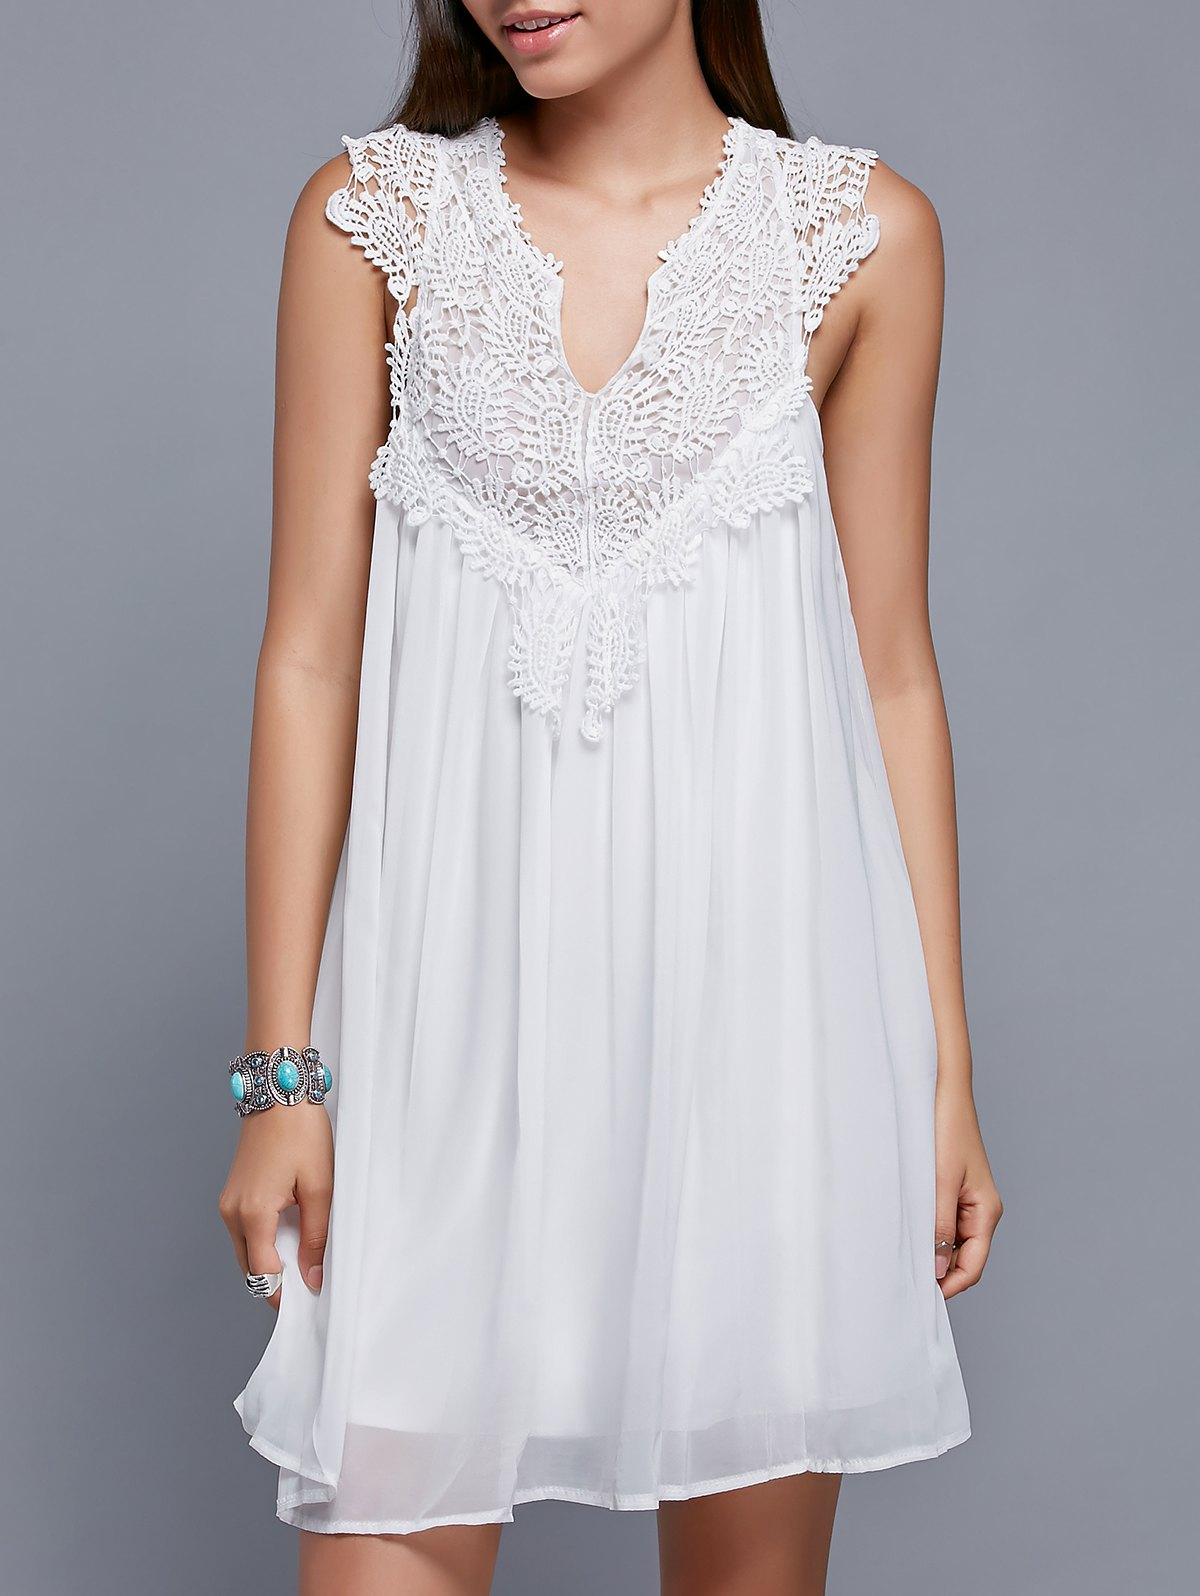 V Neck Sleeveless Cut Out Chiffon Dress - WHITE M